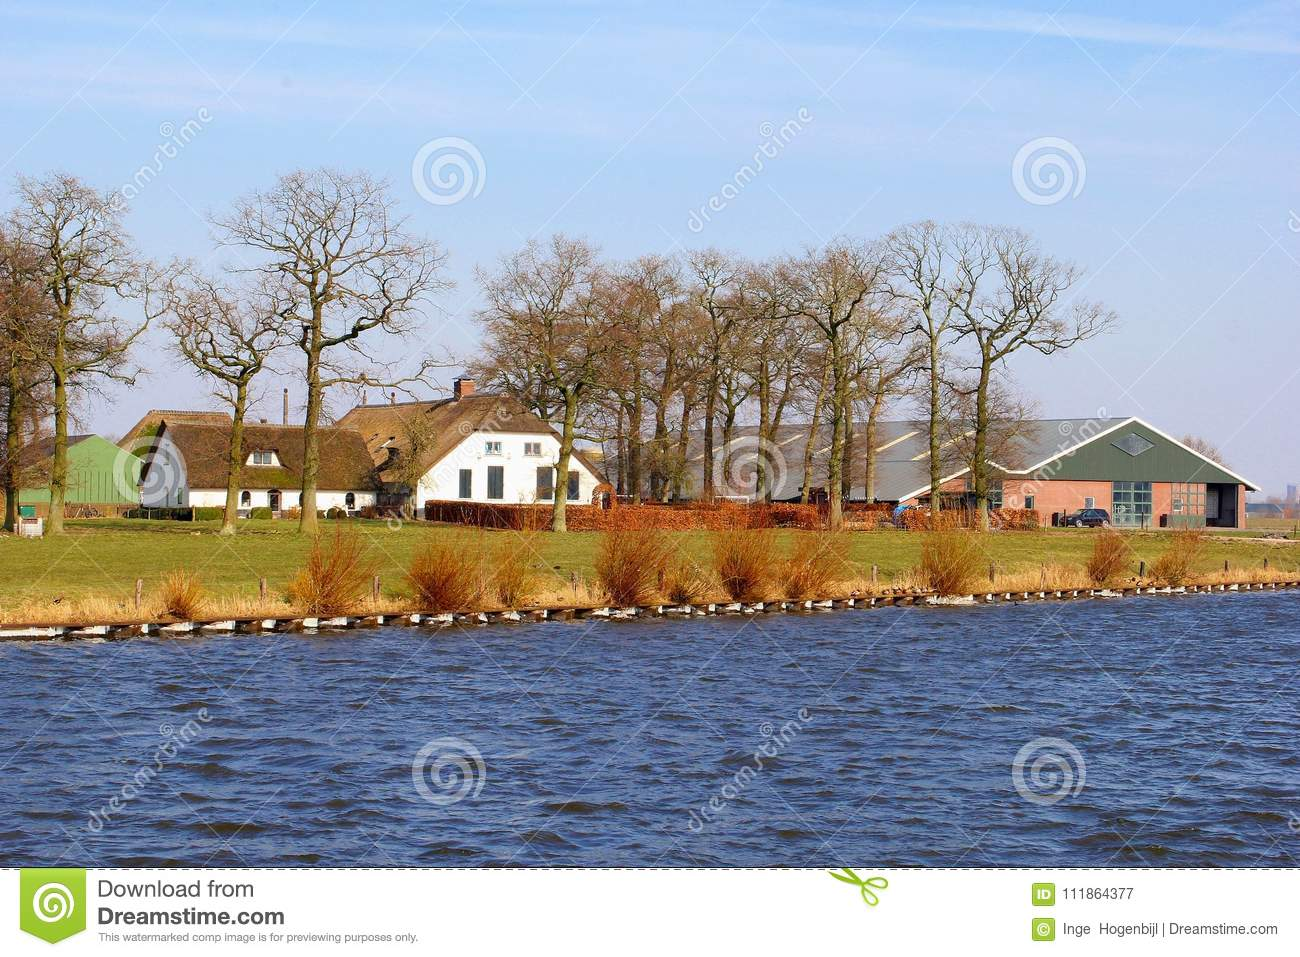 Dutch farm house buildings rural canal water, Netherlands